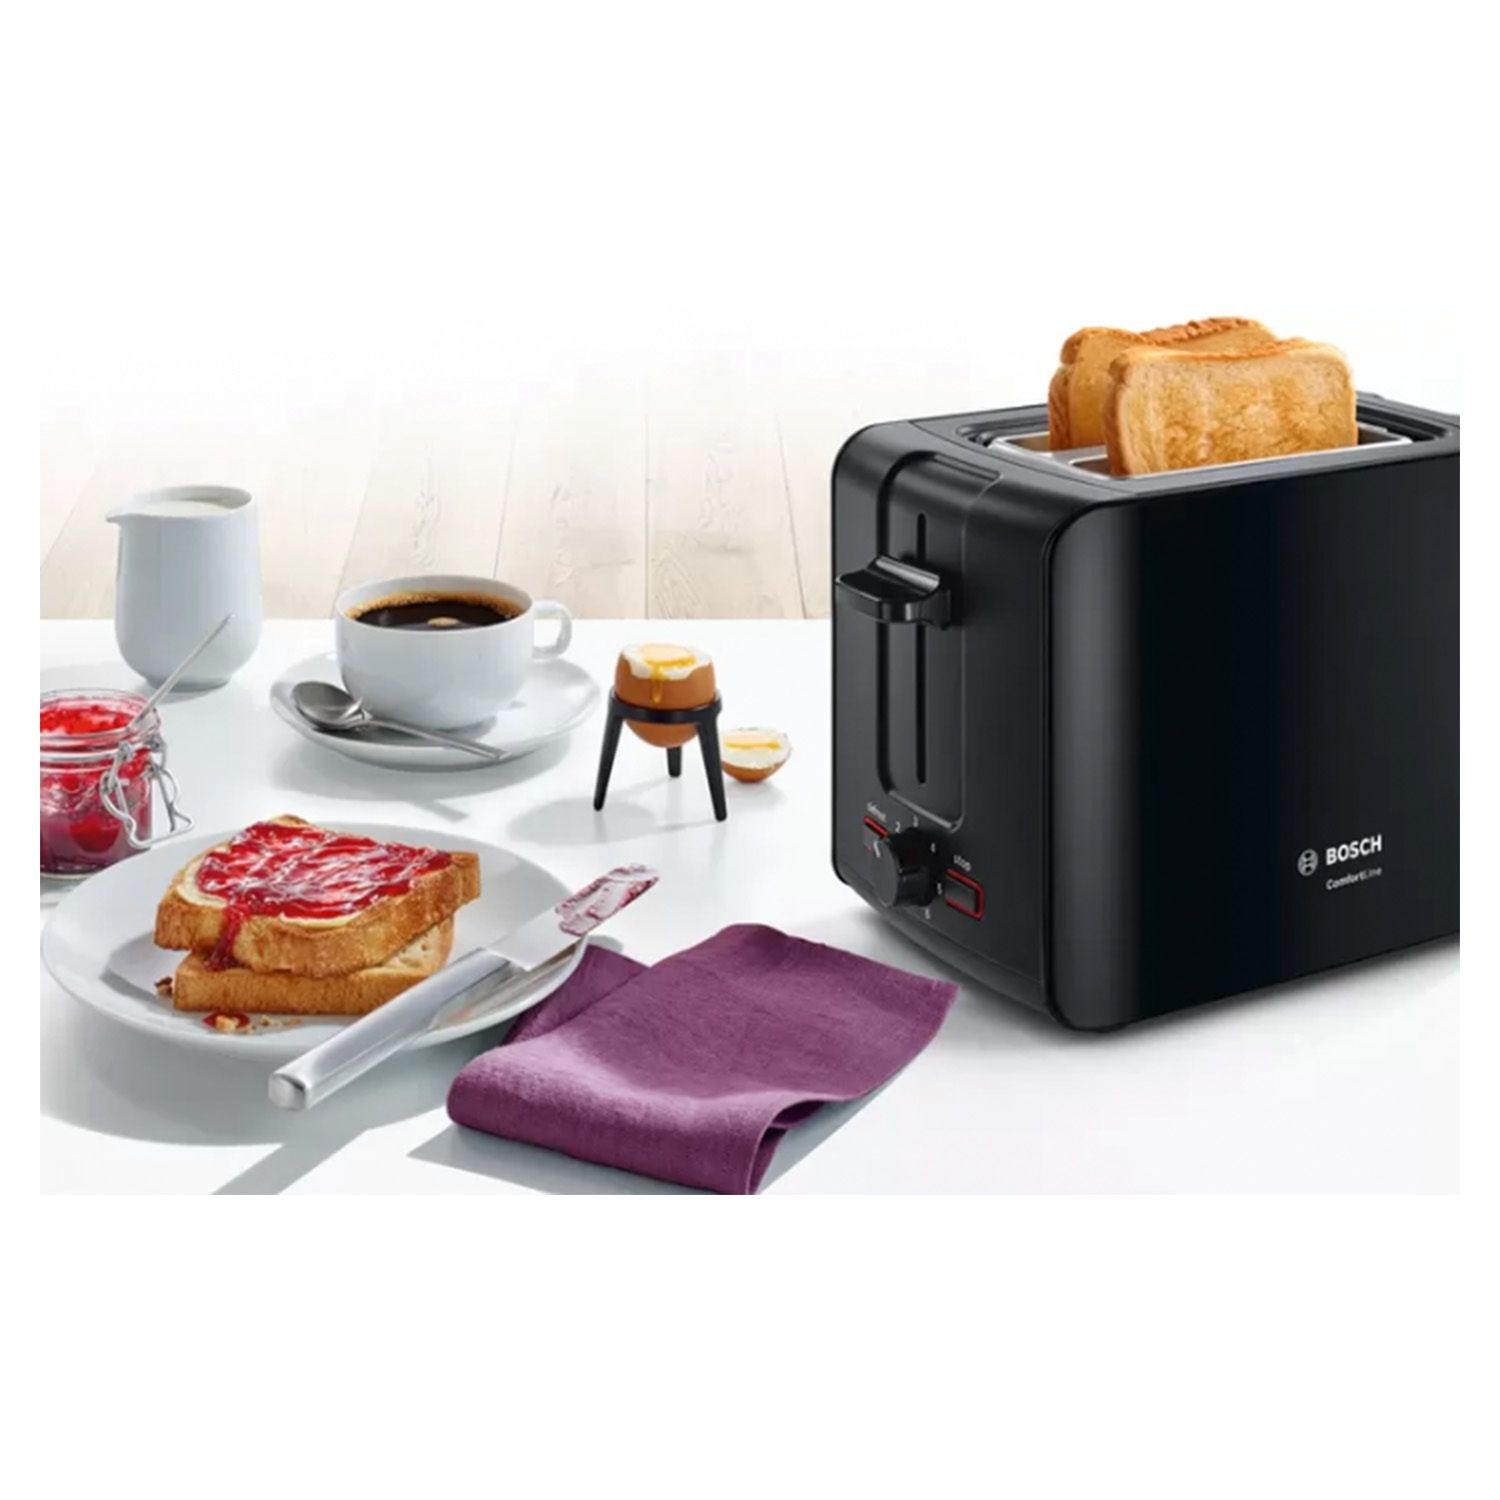 Bosch 2 Slice Toaster - Black - 3